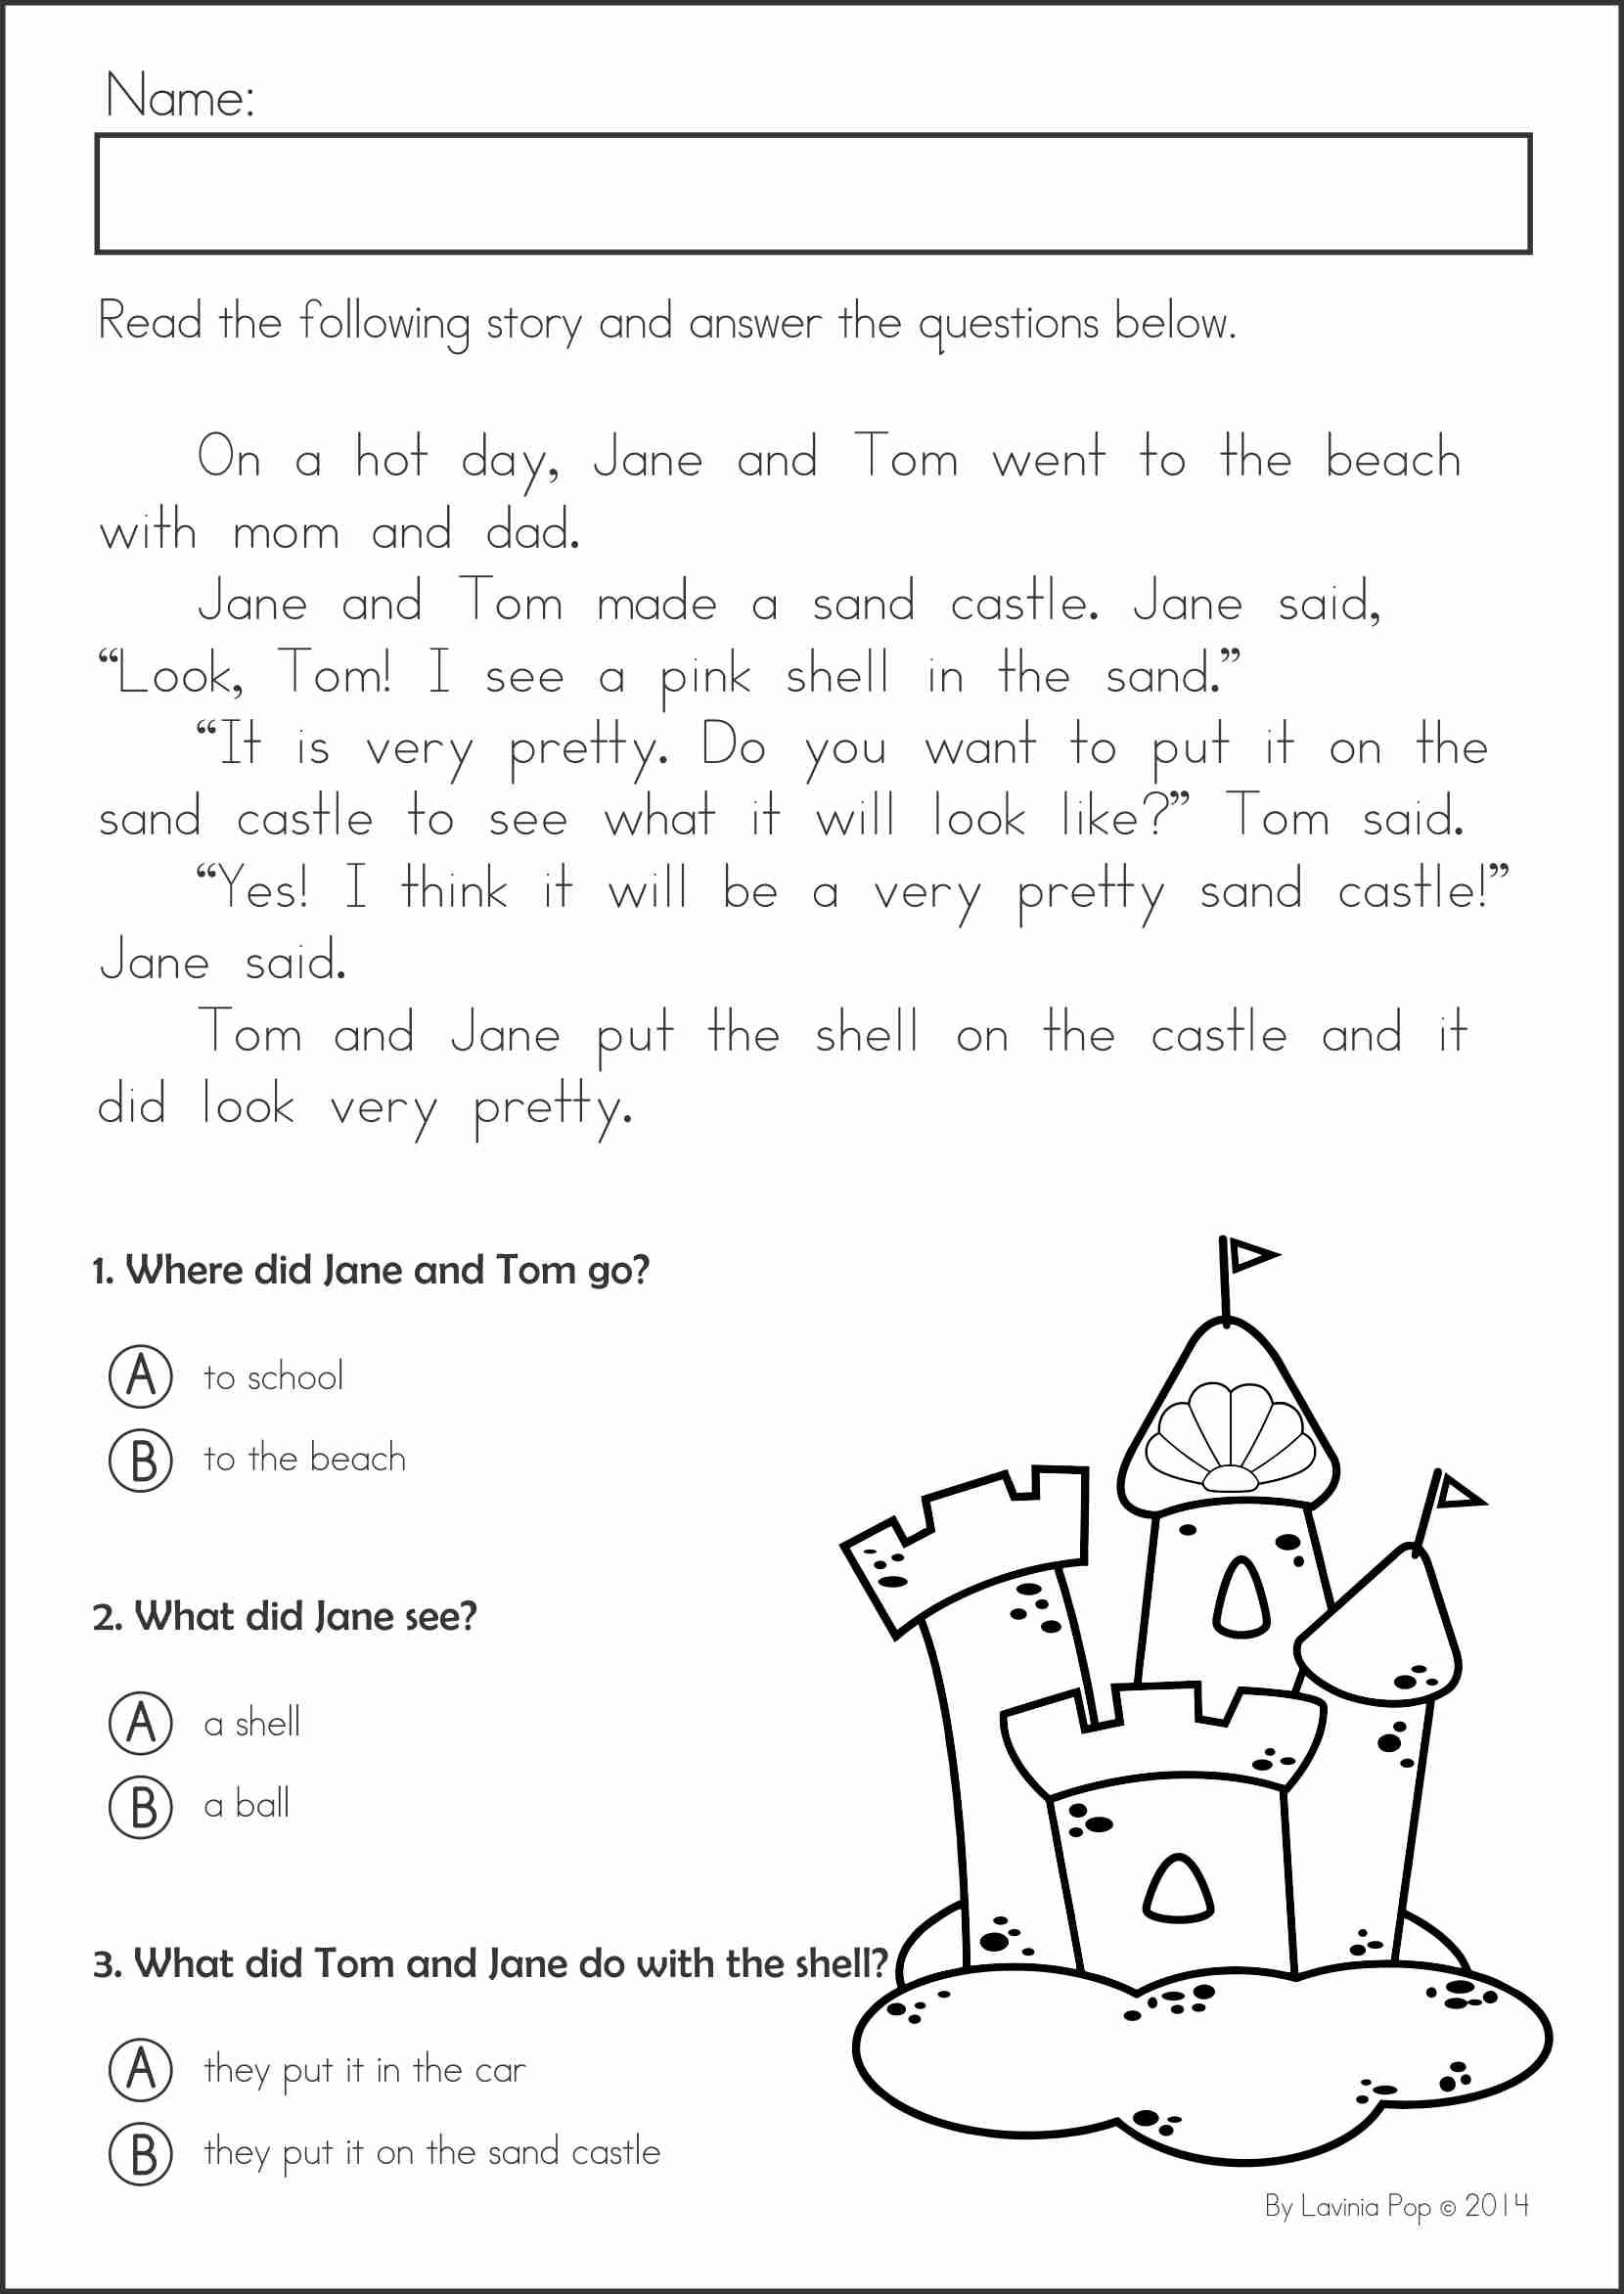 Worksheet Reading Comprehension For Kindergarten 1000 images about reading comprehension on pinterest worksheets printables and comprehension